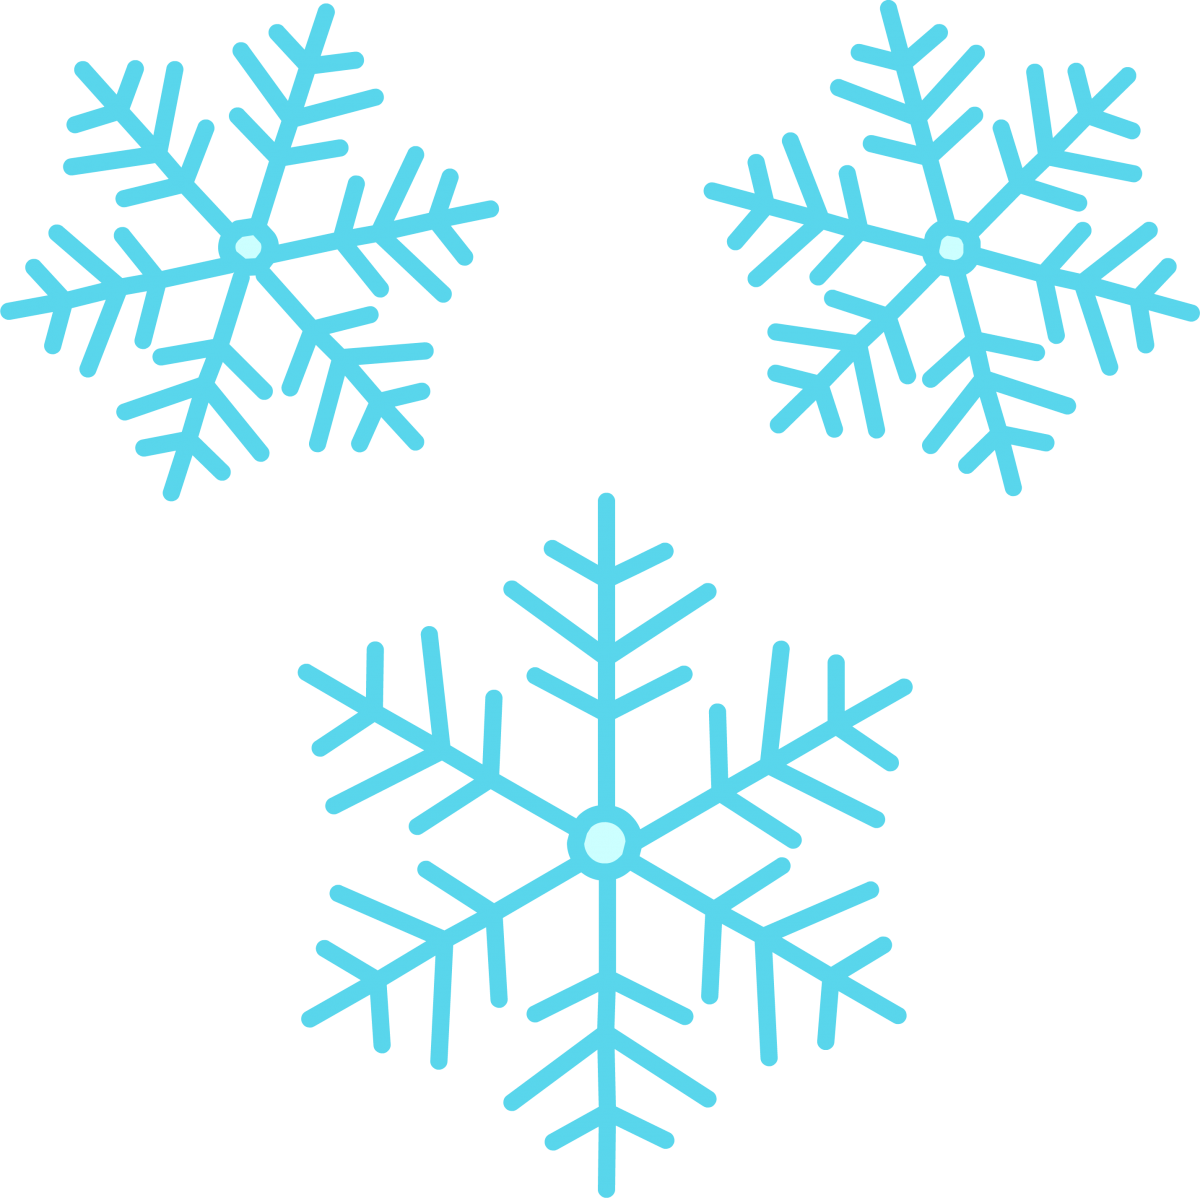 Snowflakes clipart cute. Snowflake image